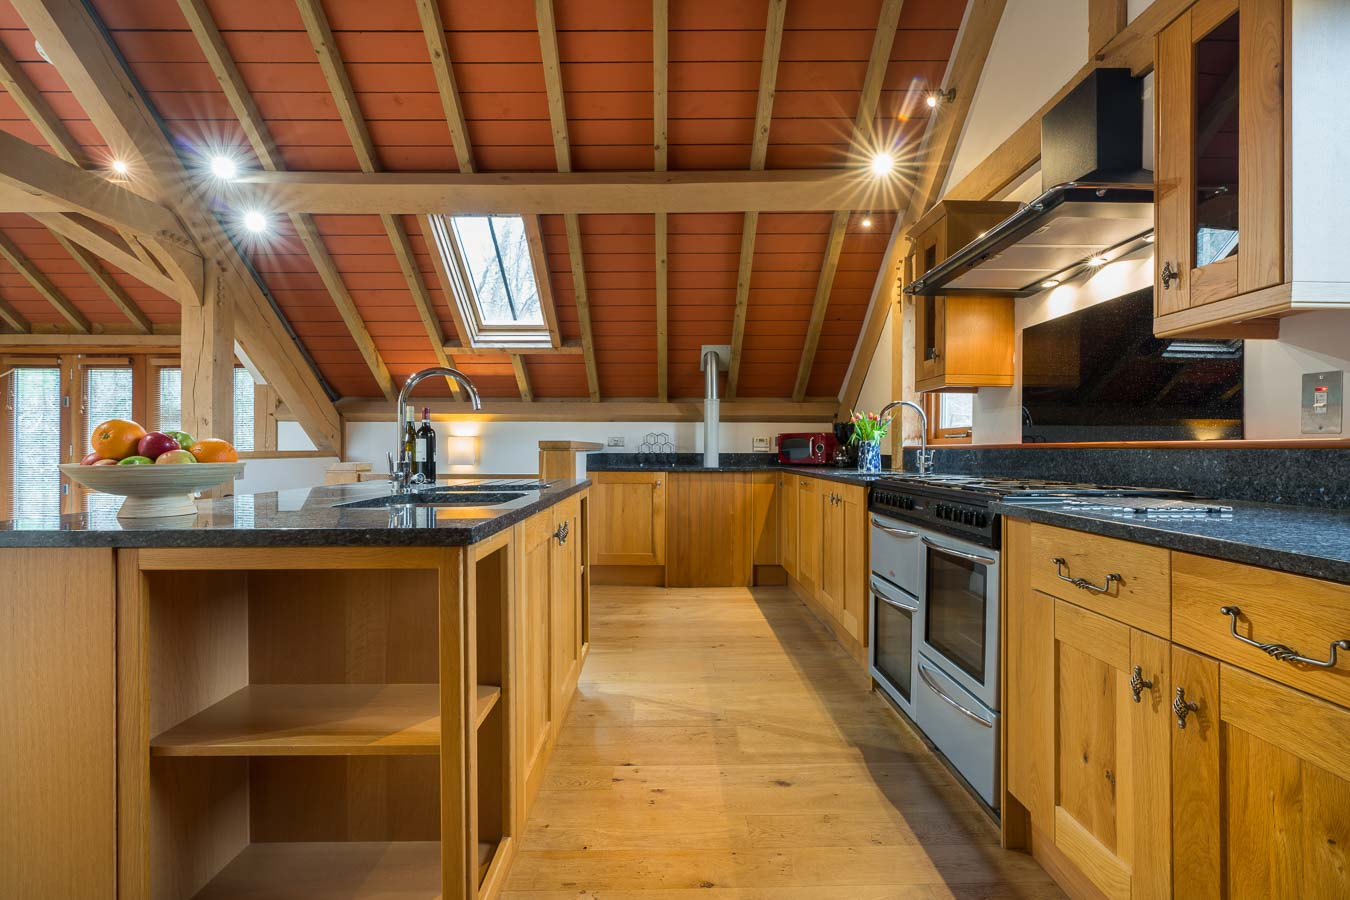 All the essentials plus some extras in the bespoke and 5 star kitchen in Orchard Lodge. Two sinks, two fridges and large gas cooking range, all set within granite and oak.